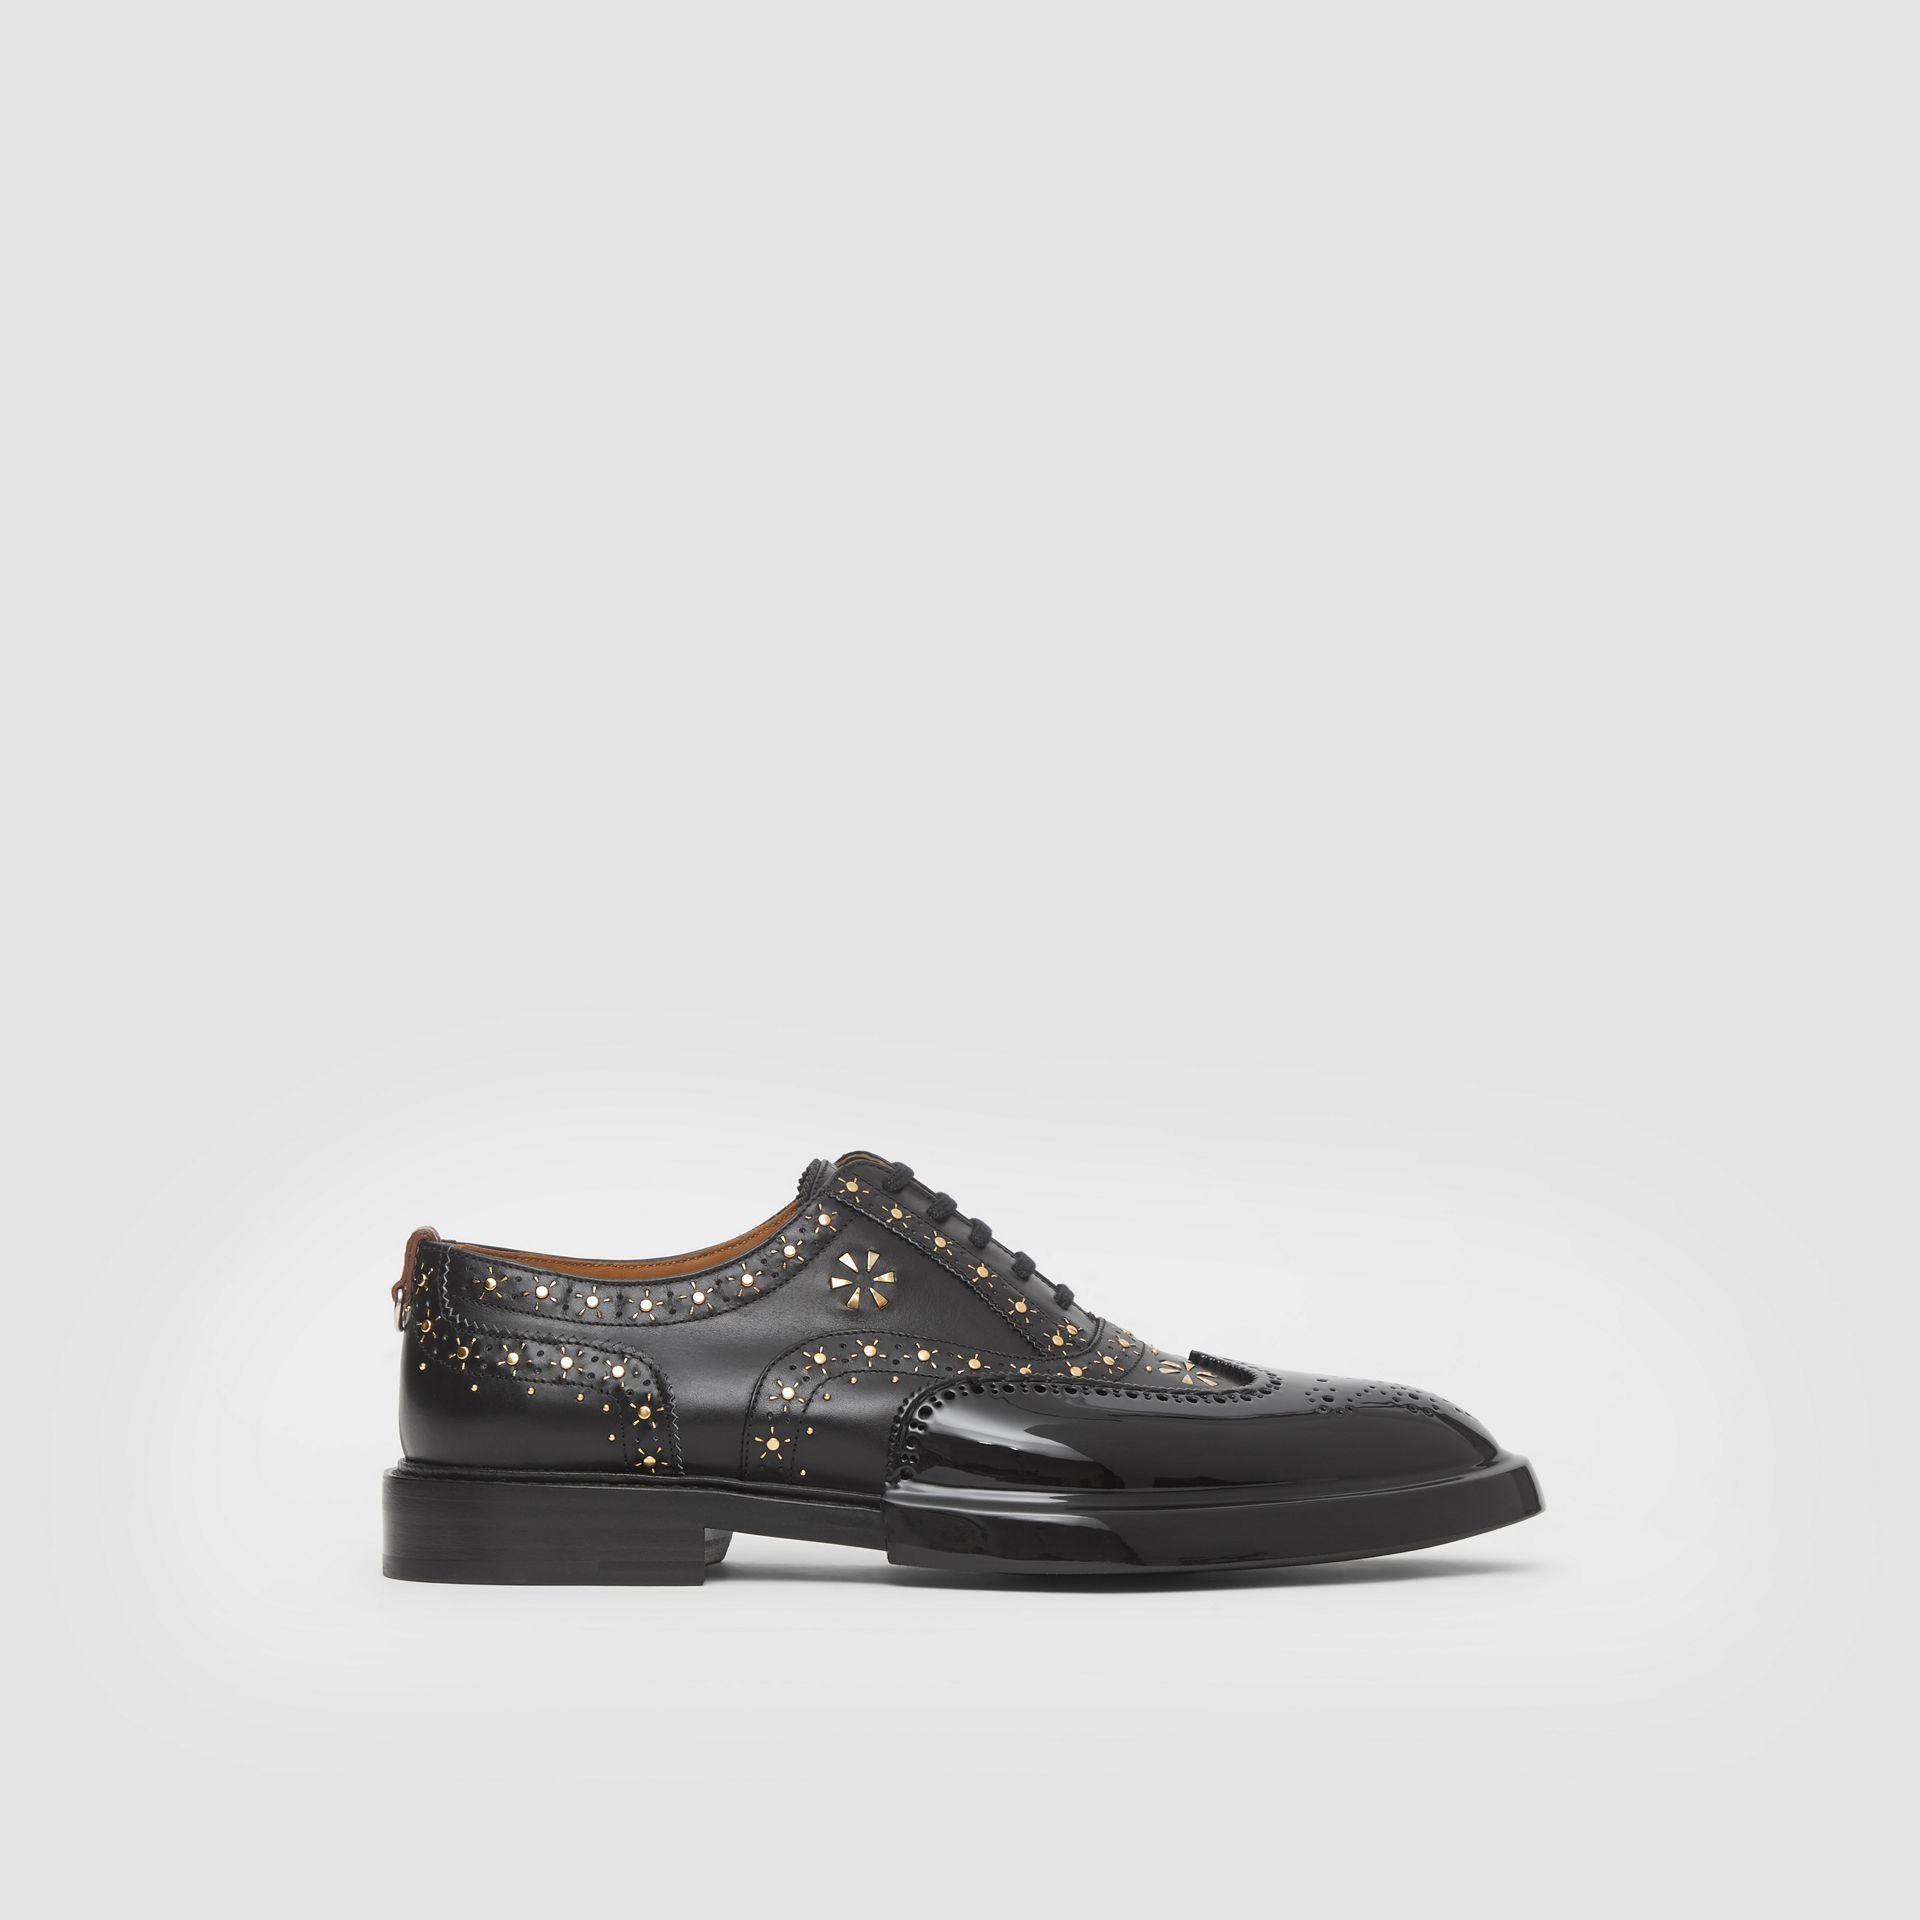 Toe Cap Detail Studded Leather Oxford Brogues in Black | Burberry Hong Kong S.A.R - gallery image 5